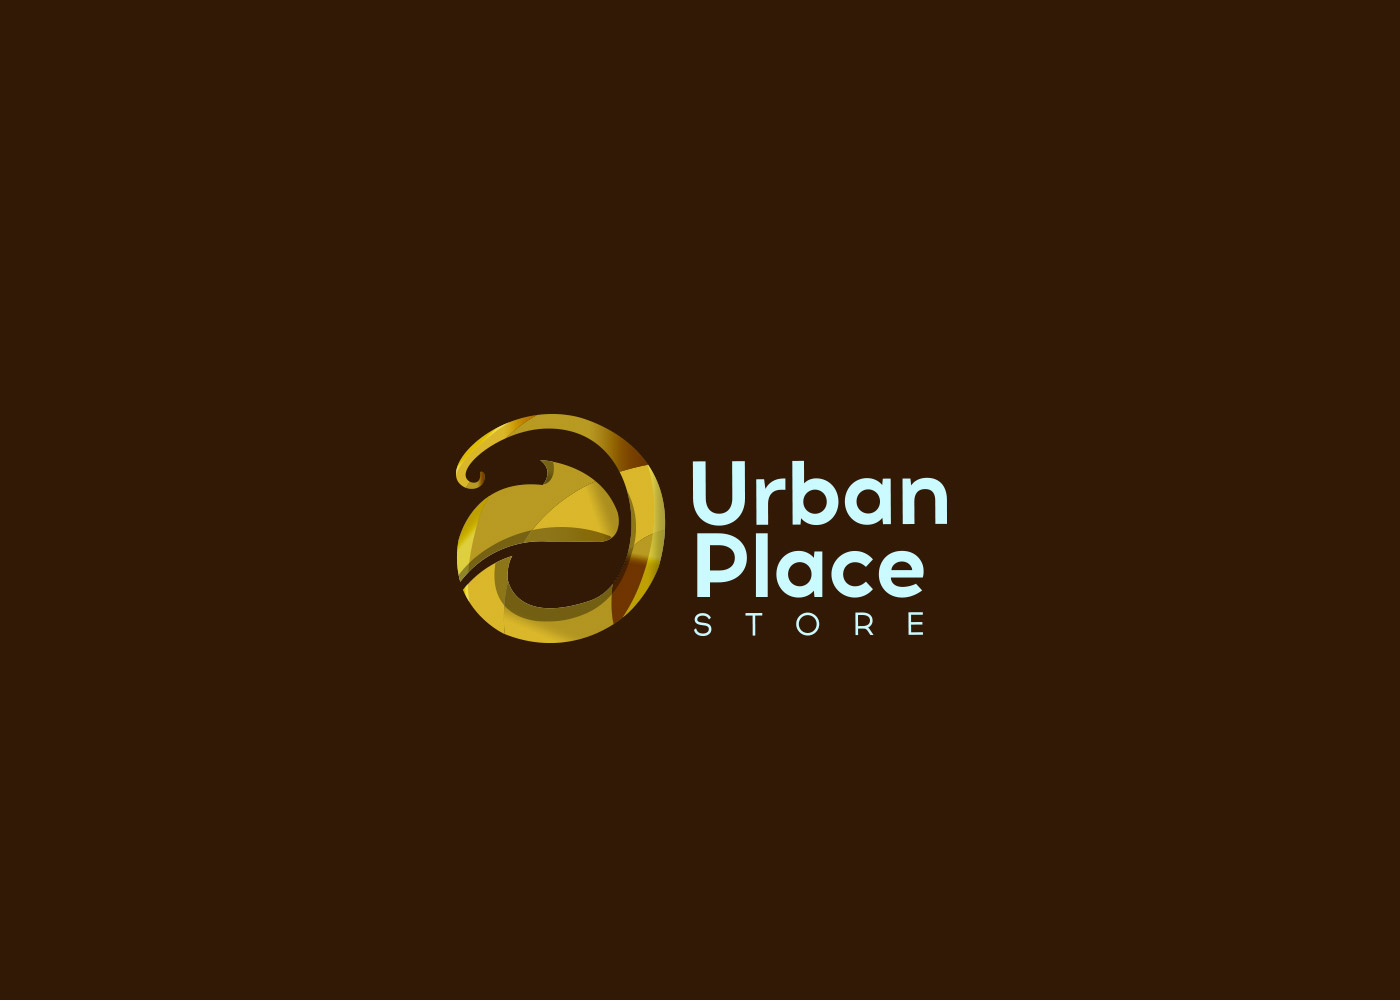 ba8c69f488523 urban-place-logo2 - Qroz Design-Digital Solutions